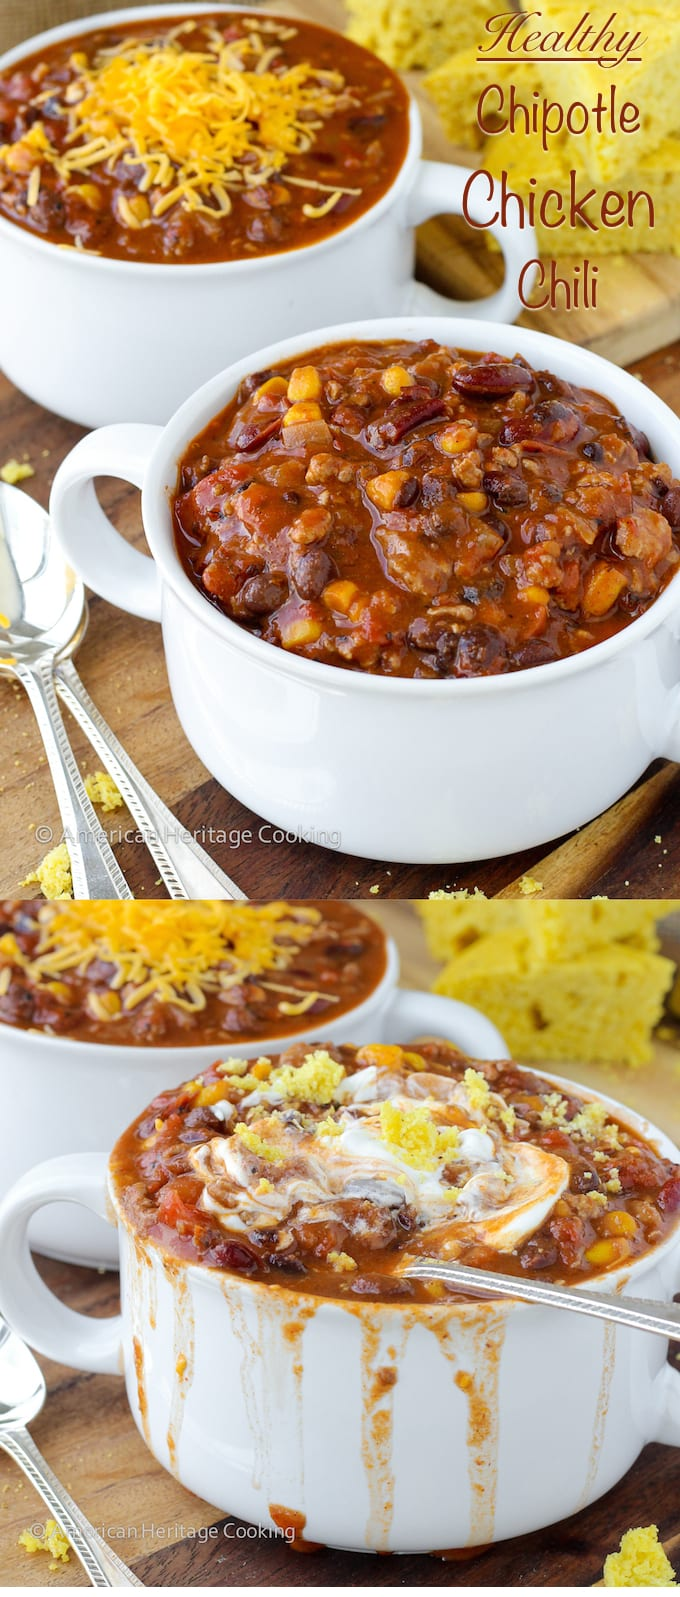 Healthy Chipotle Chicken Chili with Shaker Cornbread | Gluten Free Meals | American Heritage Cooking